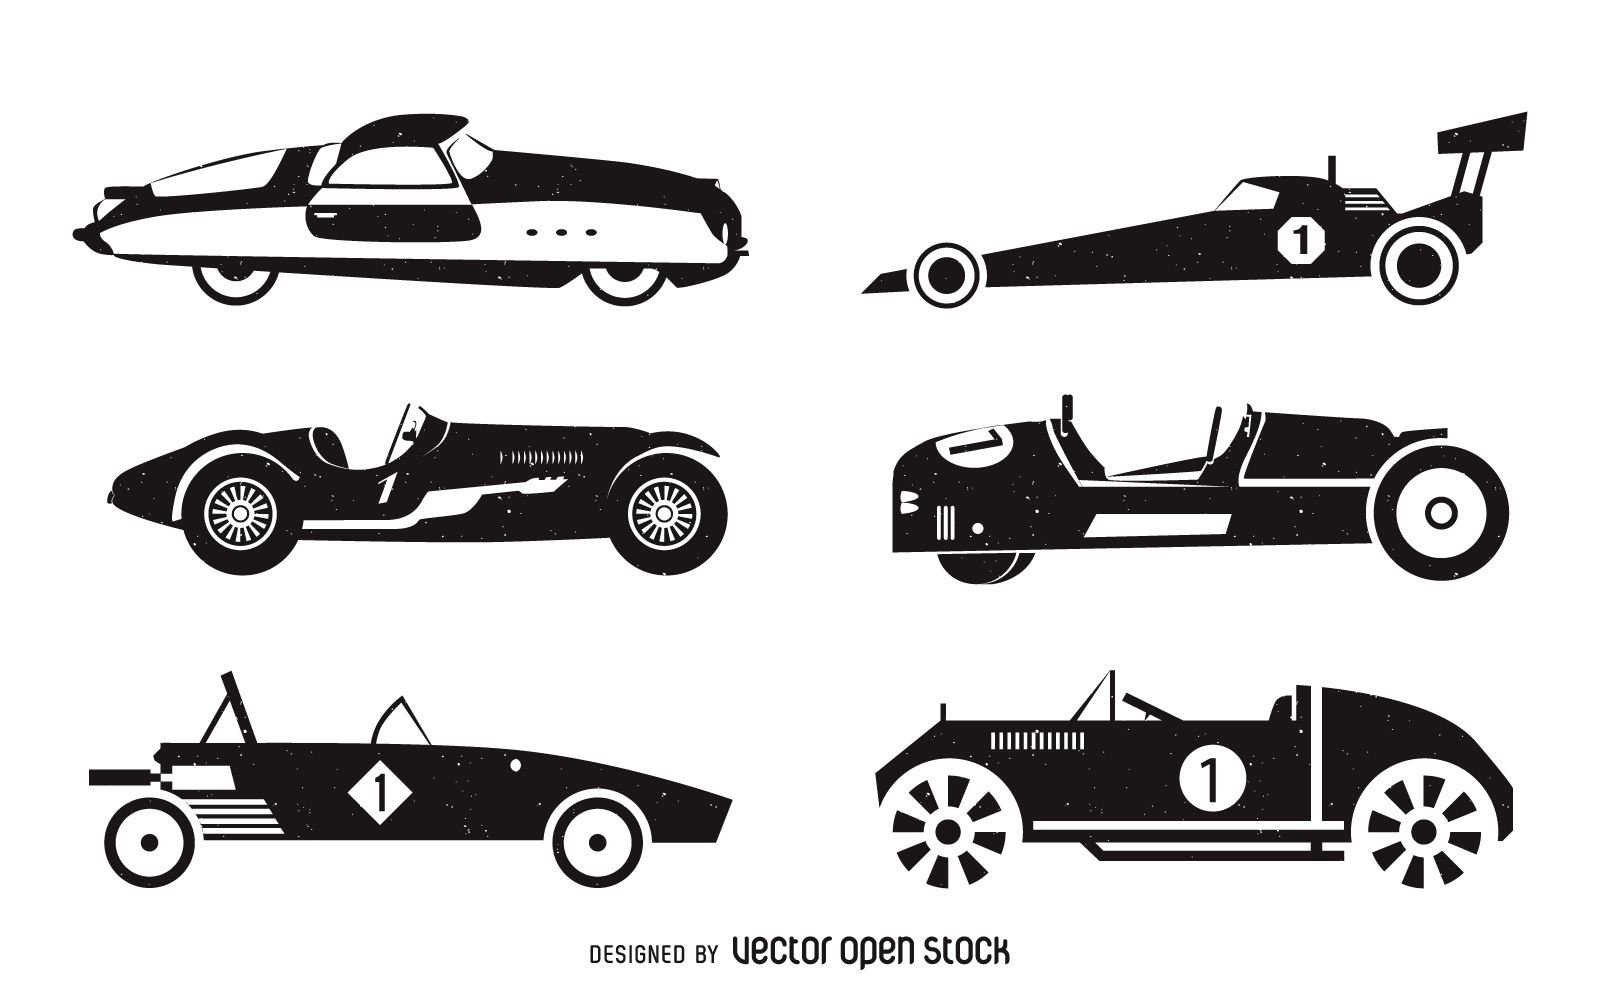 140467 Free Car Icon Vector together with 140193 Silhouette Carros Icons Vector furthermore Stock Illustration Motorbike Rider Vector Illustration White Background Image49747526 furthermore 1020 Free Clipart Of A Round Border Of Barley besides Checkered Race Flags Decals Boys Room. on race car graphics